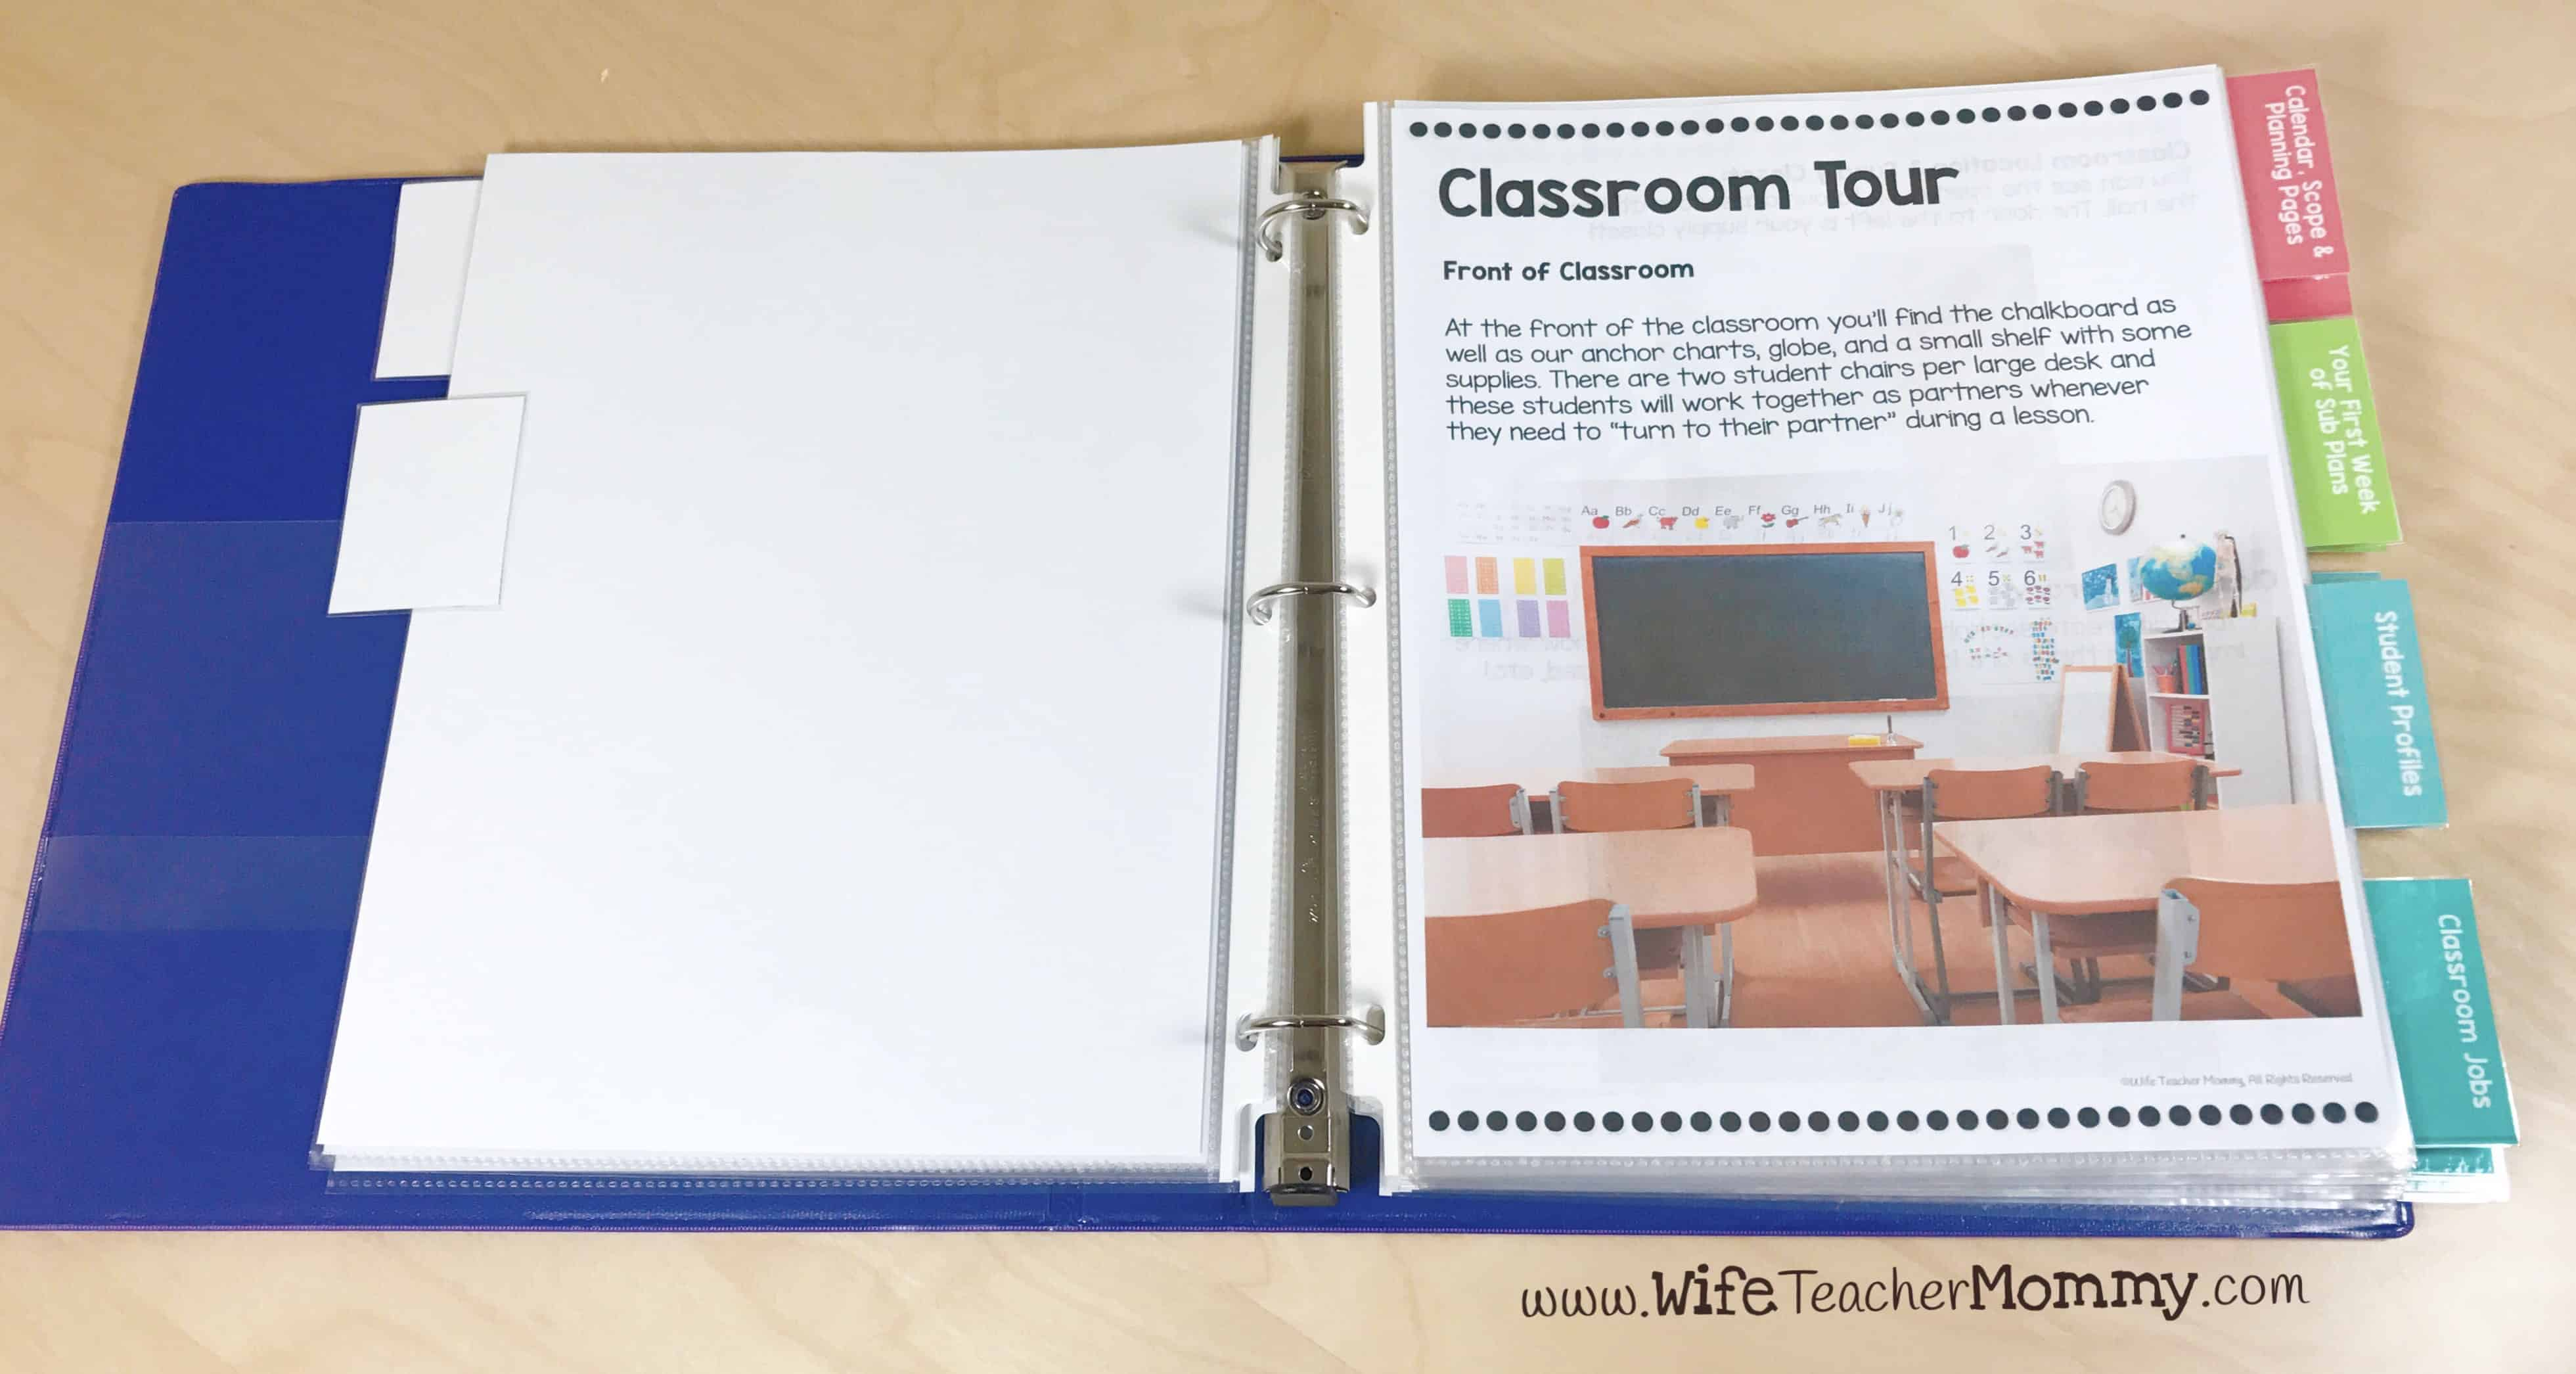 Give your maternity sub a classroom tour! This will help them learn their way around from the classroom, and in this format they will be able to refer back to it as well.